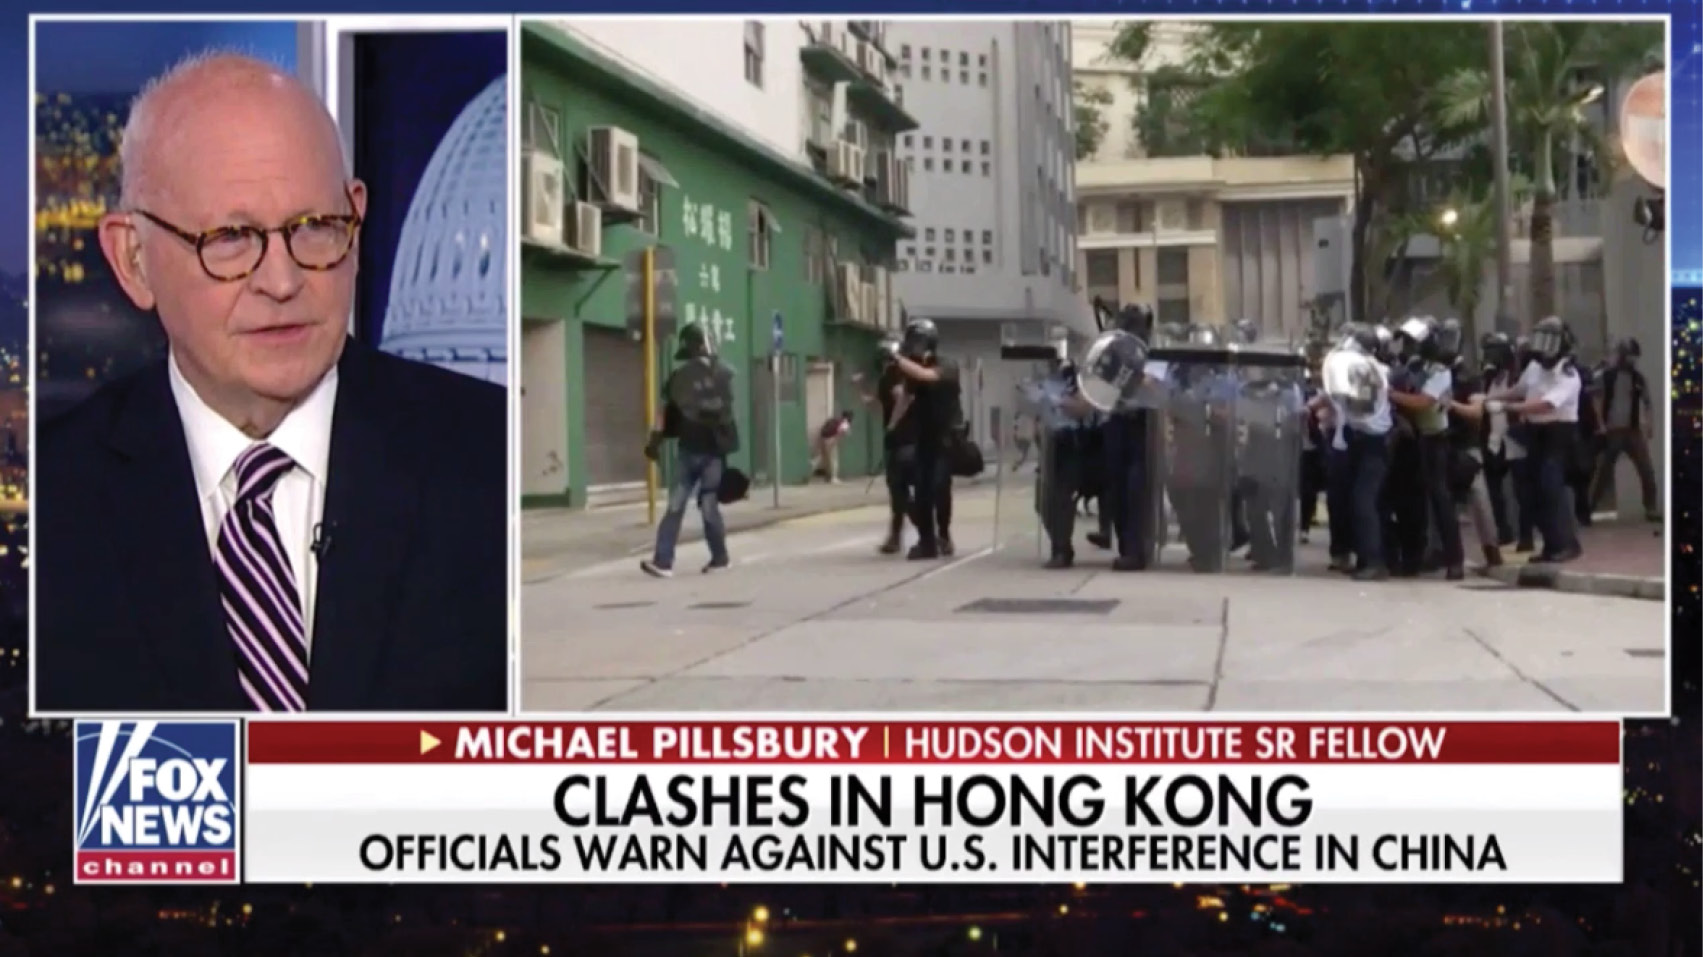 Michael Pillsbury discussed the U.S. reaction to the Hong Kong protests.